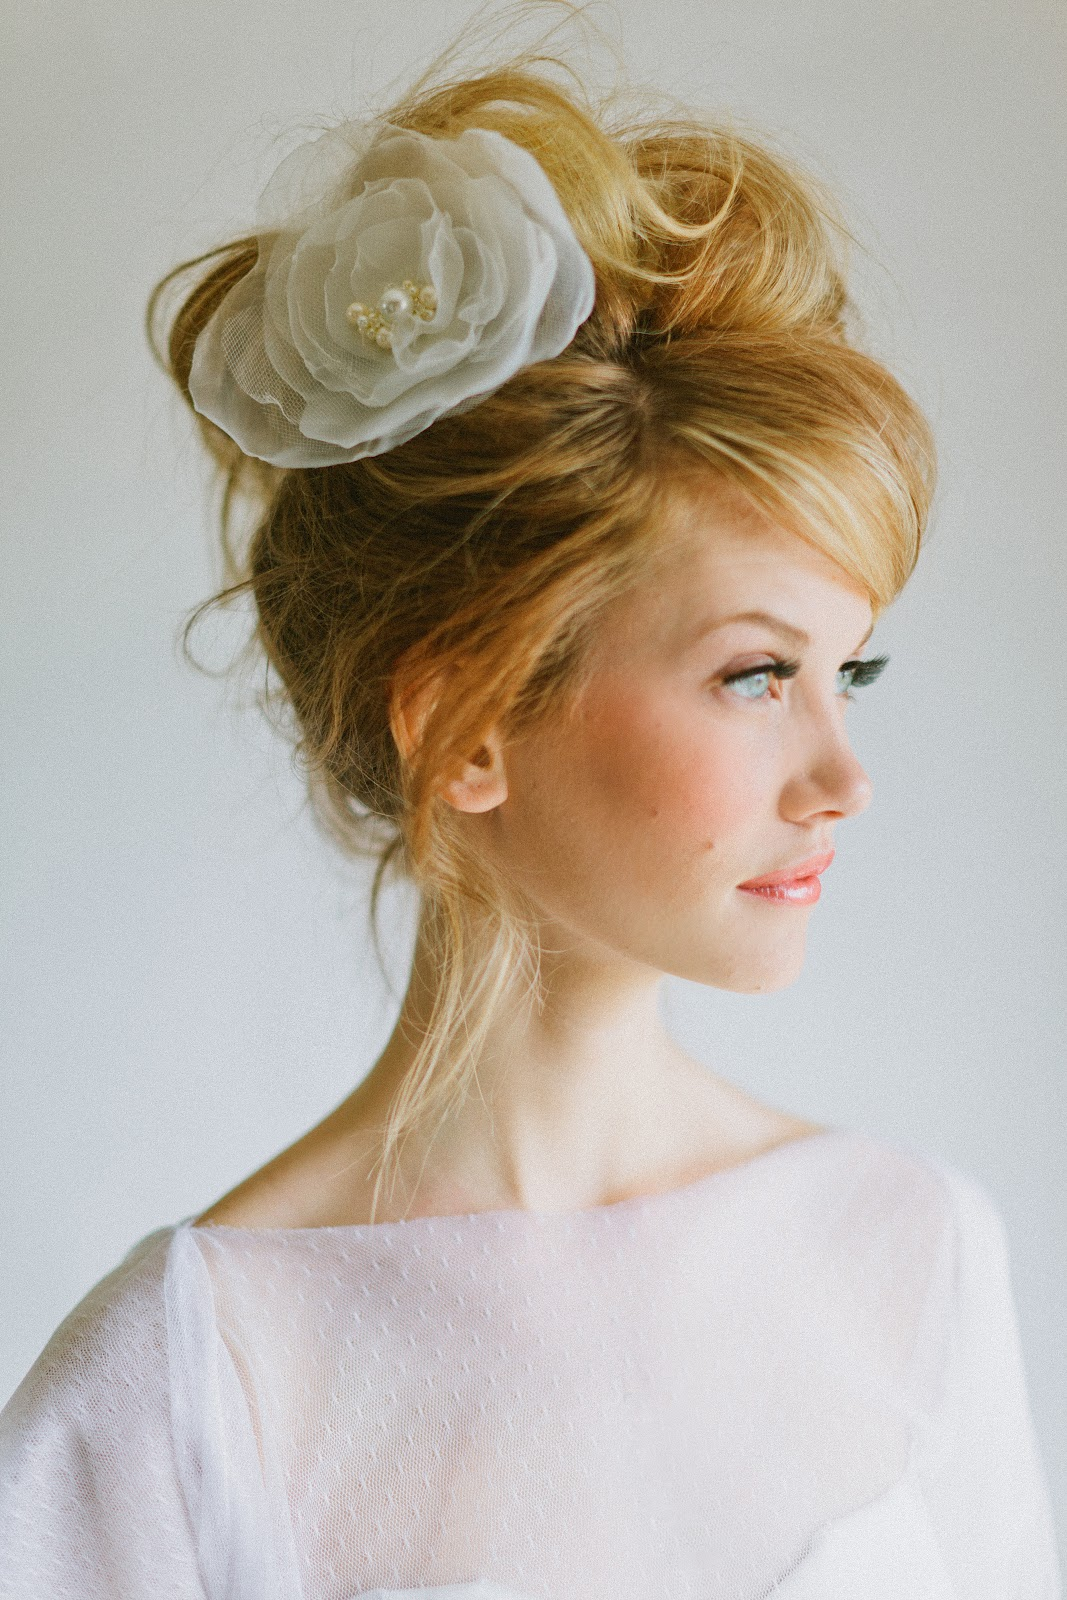 Hair And Make-up By Steph 2012 Bridal Trends #1